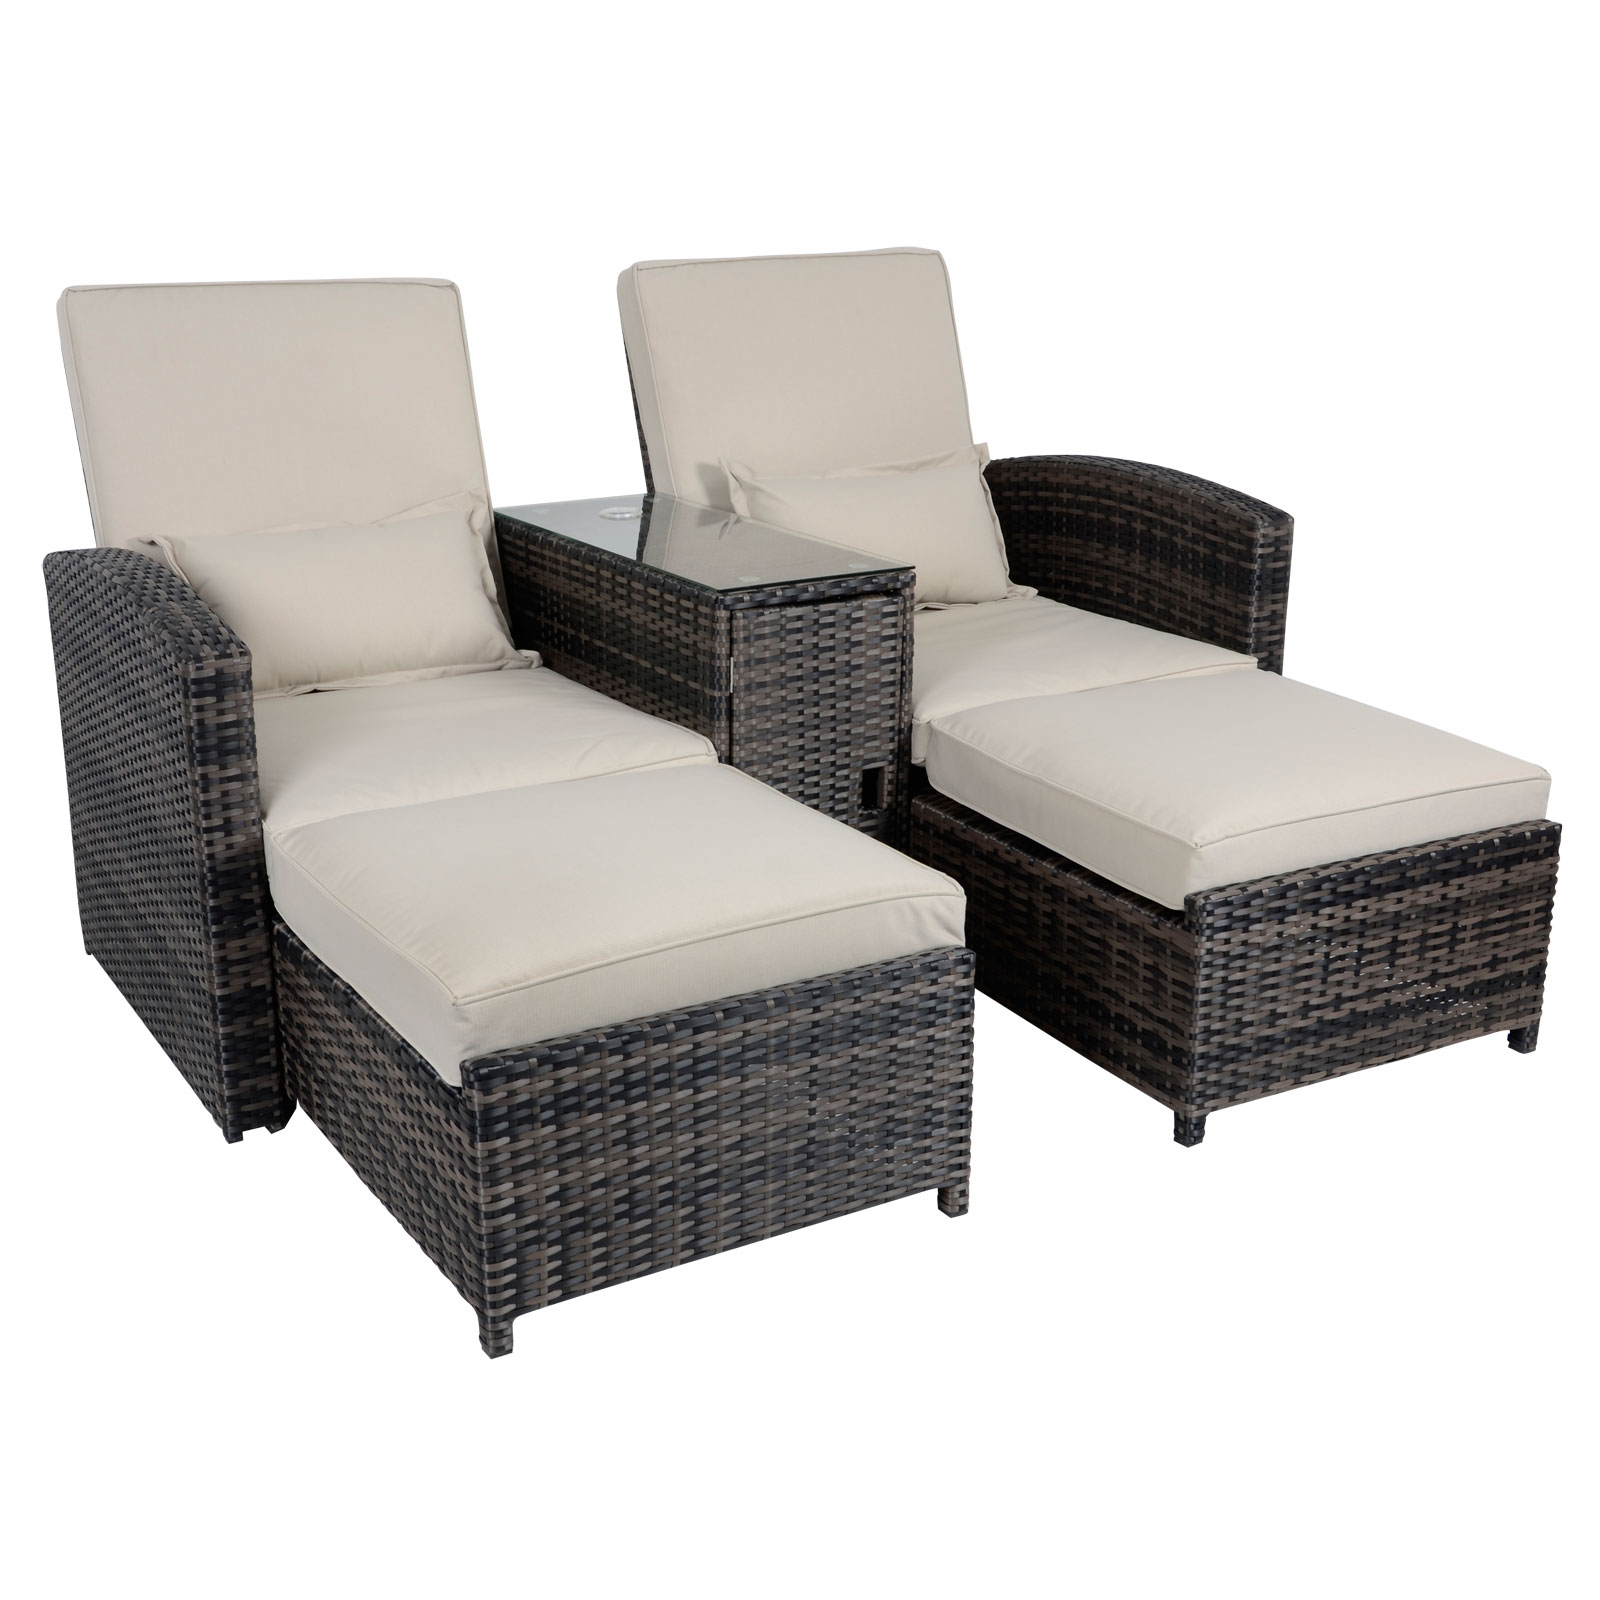 aluminium reclining garden chairs uk chair leg covers home depot antigua rattan companion double